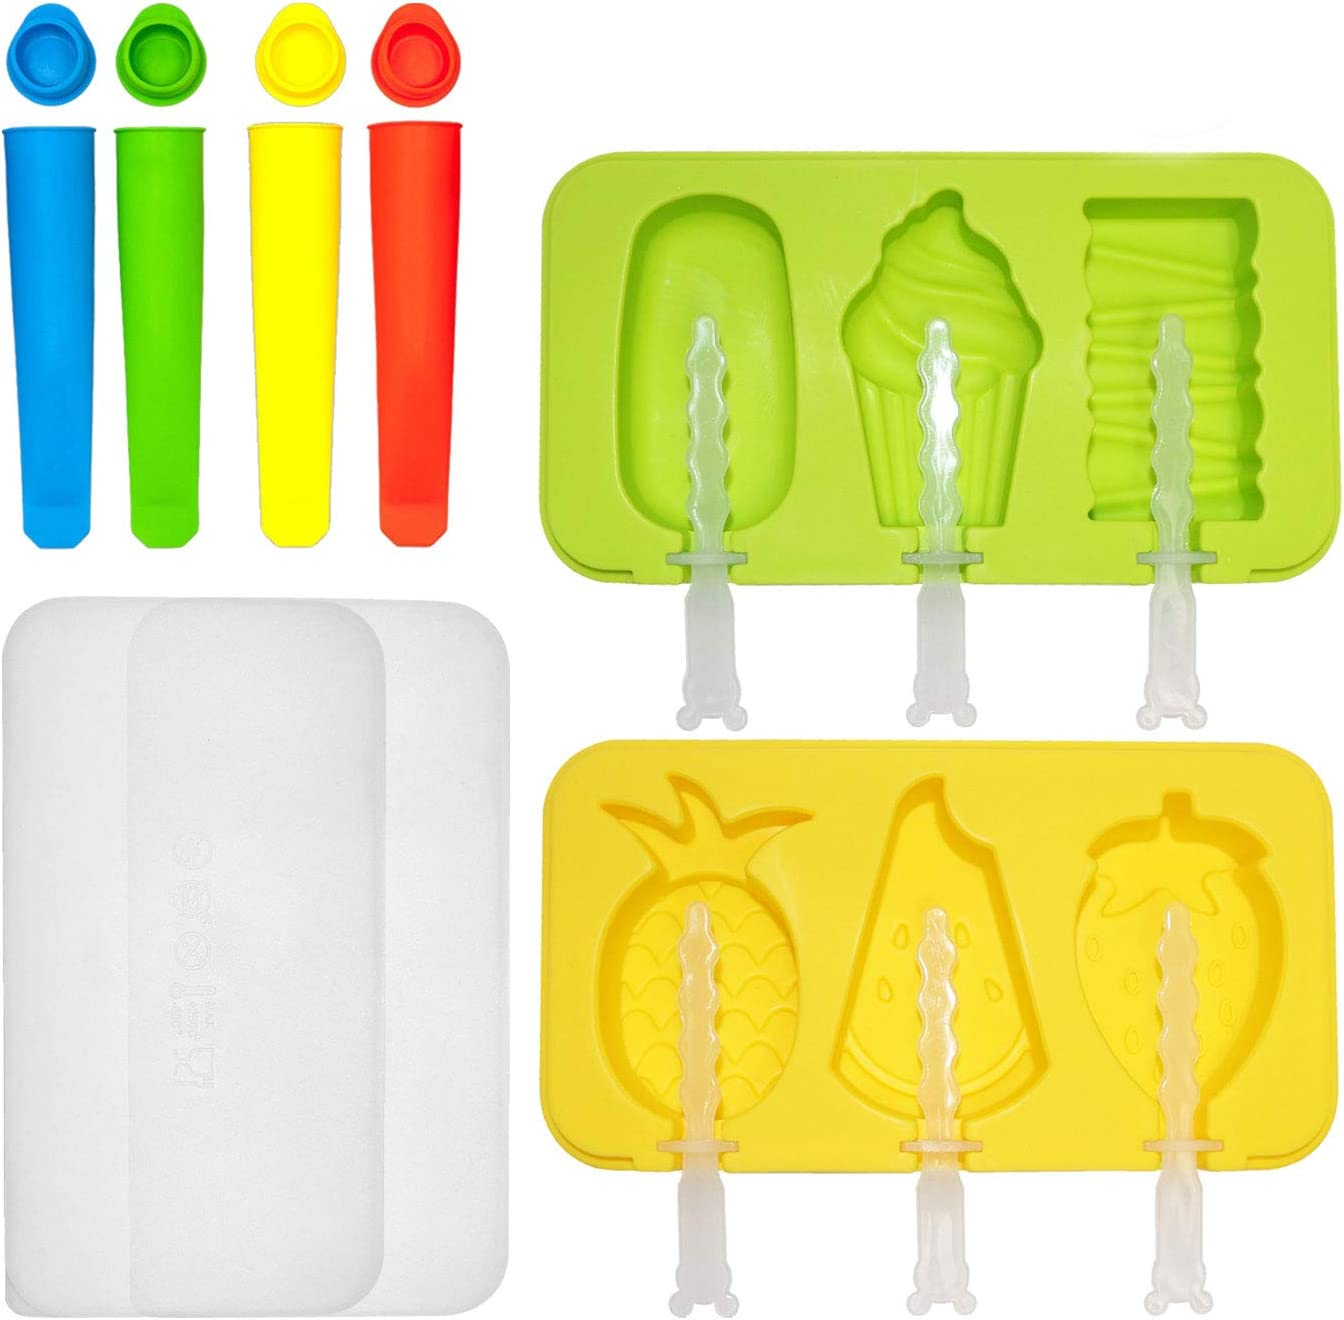 Popsicle Molds Set, Silicone Ice Pop Molds With Lids, Reusable Homemade Popsicle Make with 12 Popsicle Sticks, Food Grade Silicone, BPA-Free